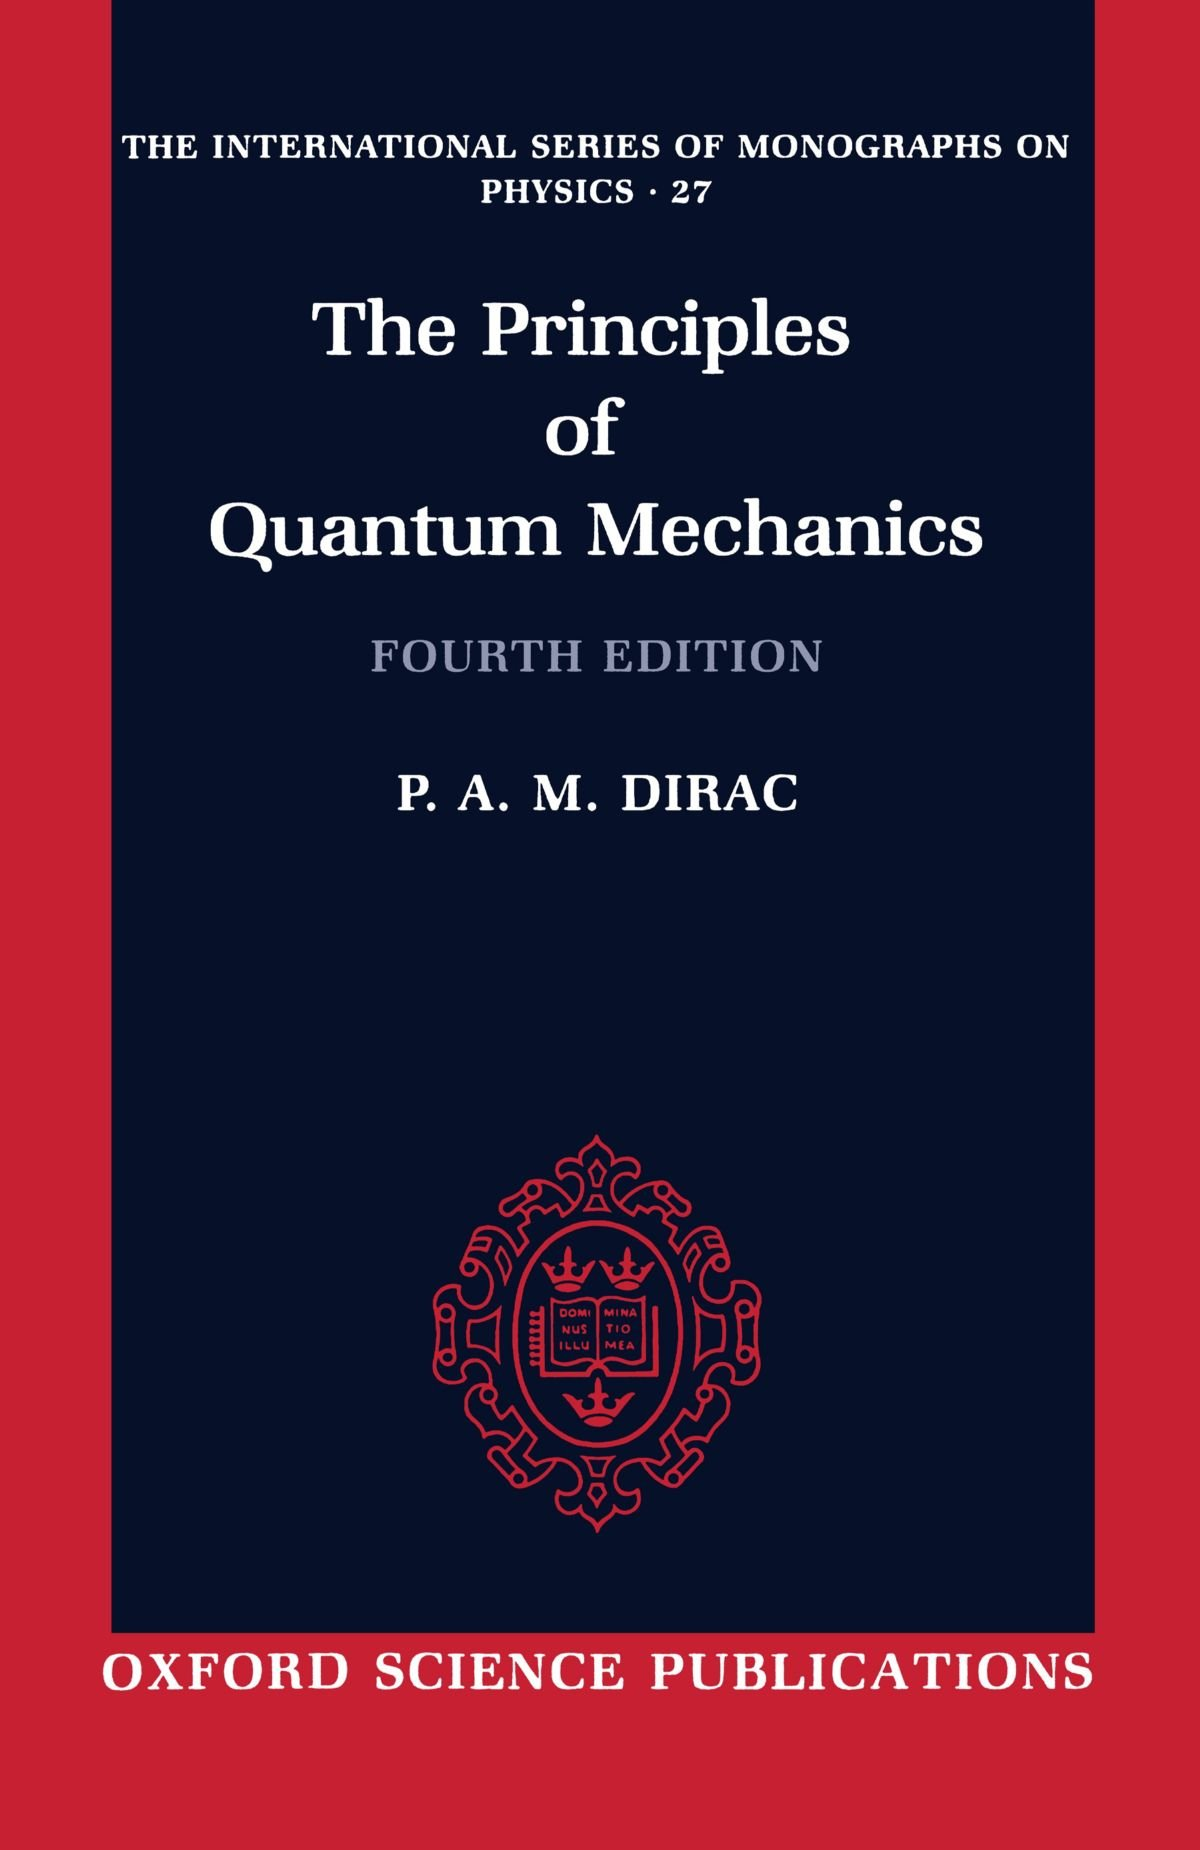 The Principles of Quantum Mechanics.